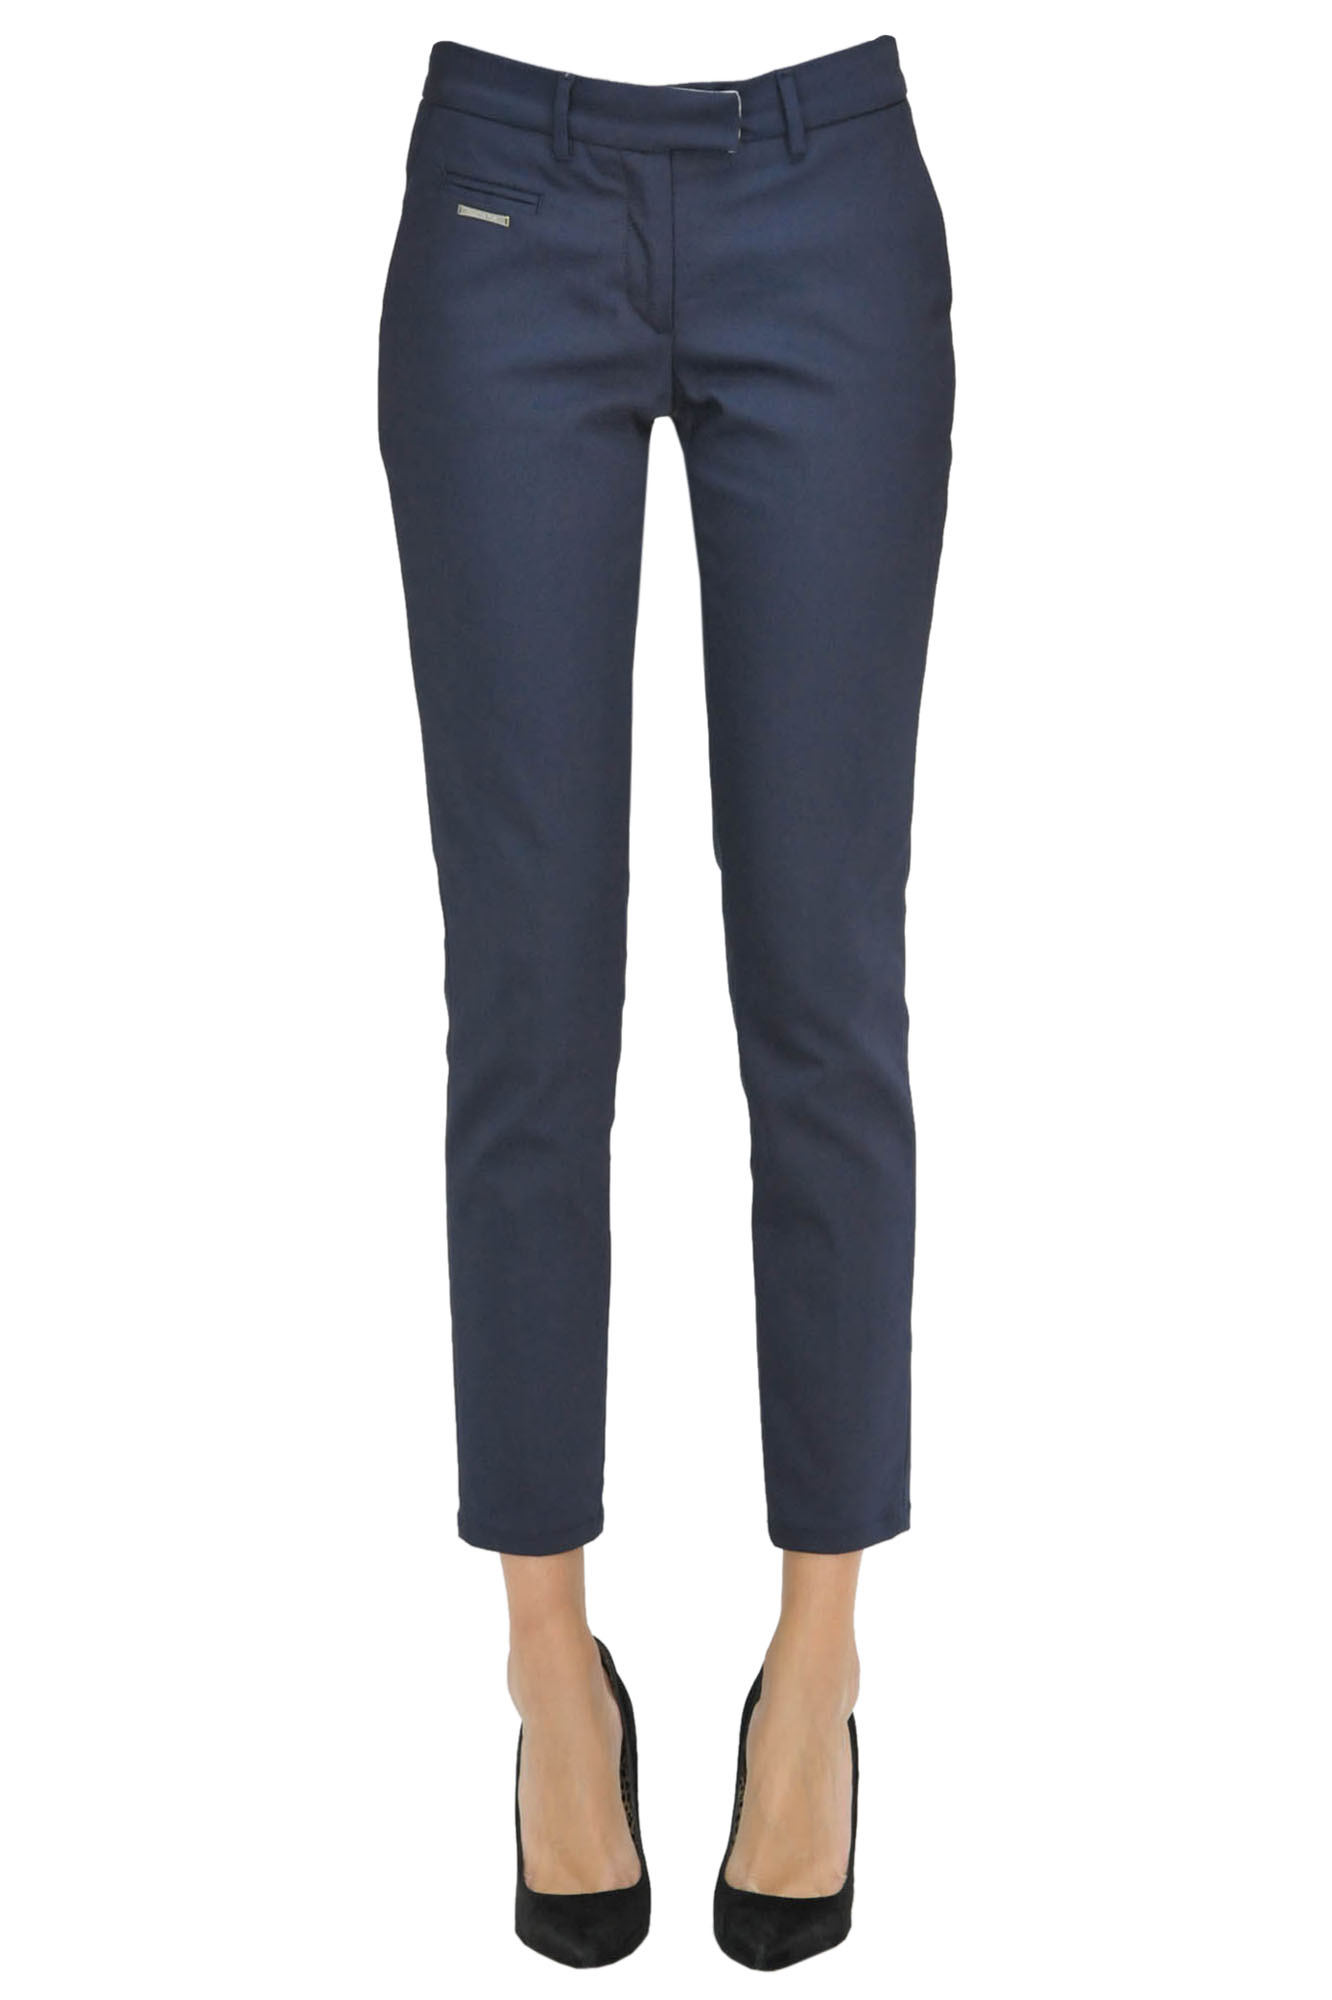 Image of Pantaloni slim in misto cotone